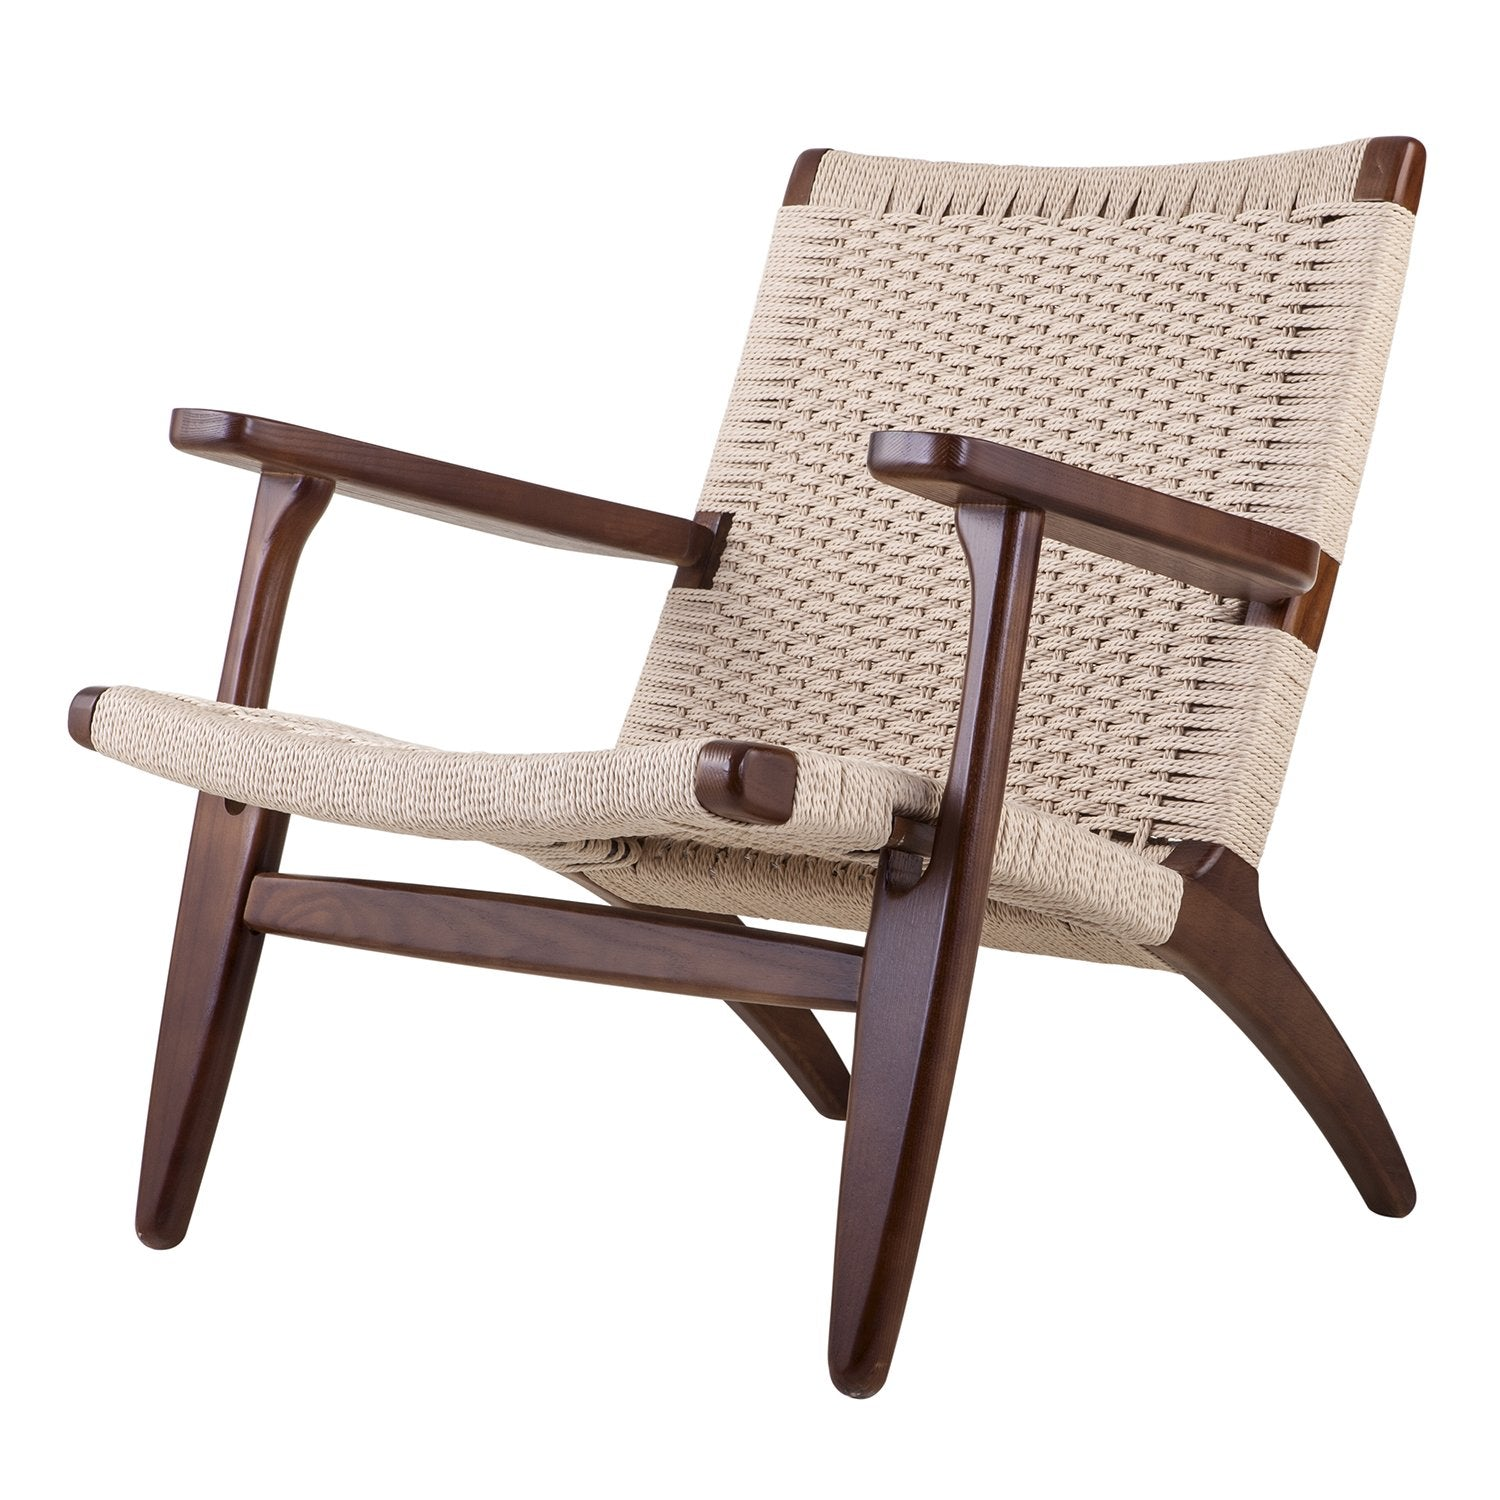 Superieur ... Claus Accent Chair In Walnut Finish Beech Wood And Rattan Accent Chairs Alan  Decor ...